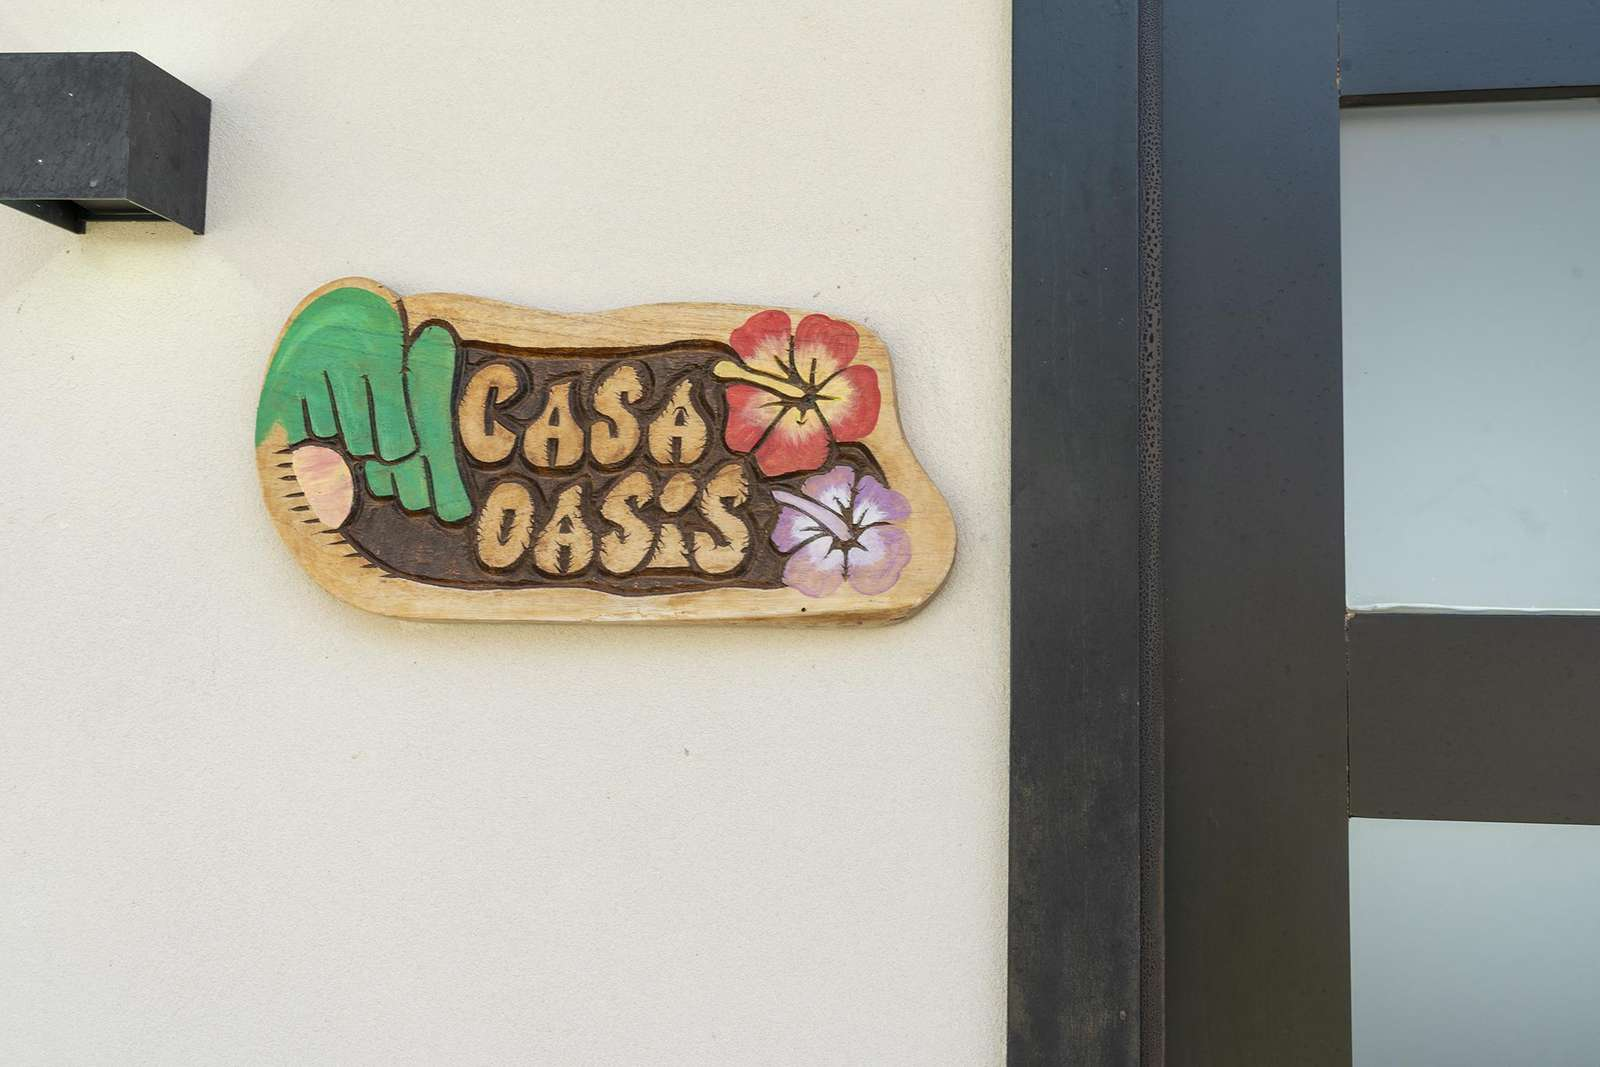 Welcome to Casa Oasis!